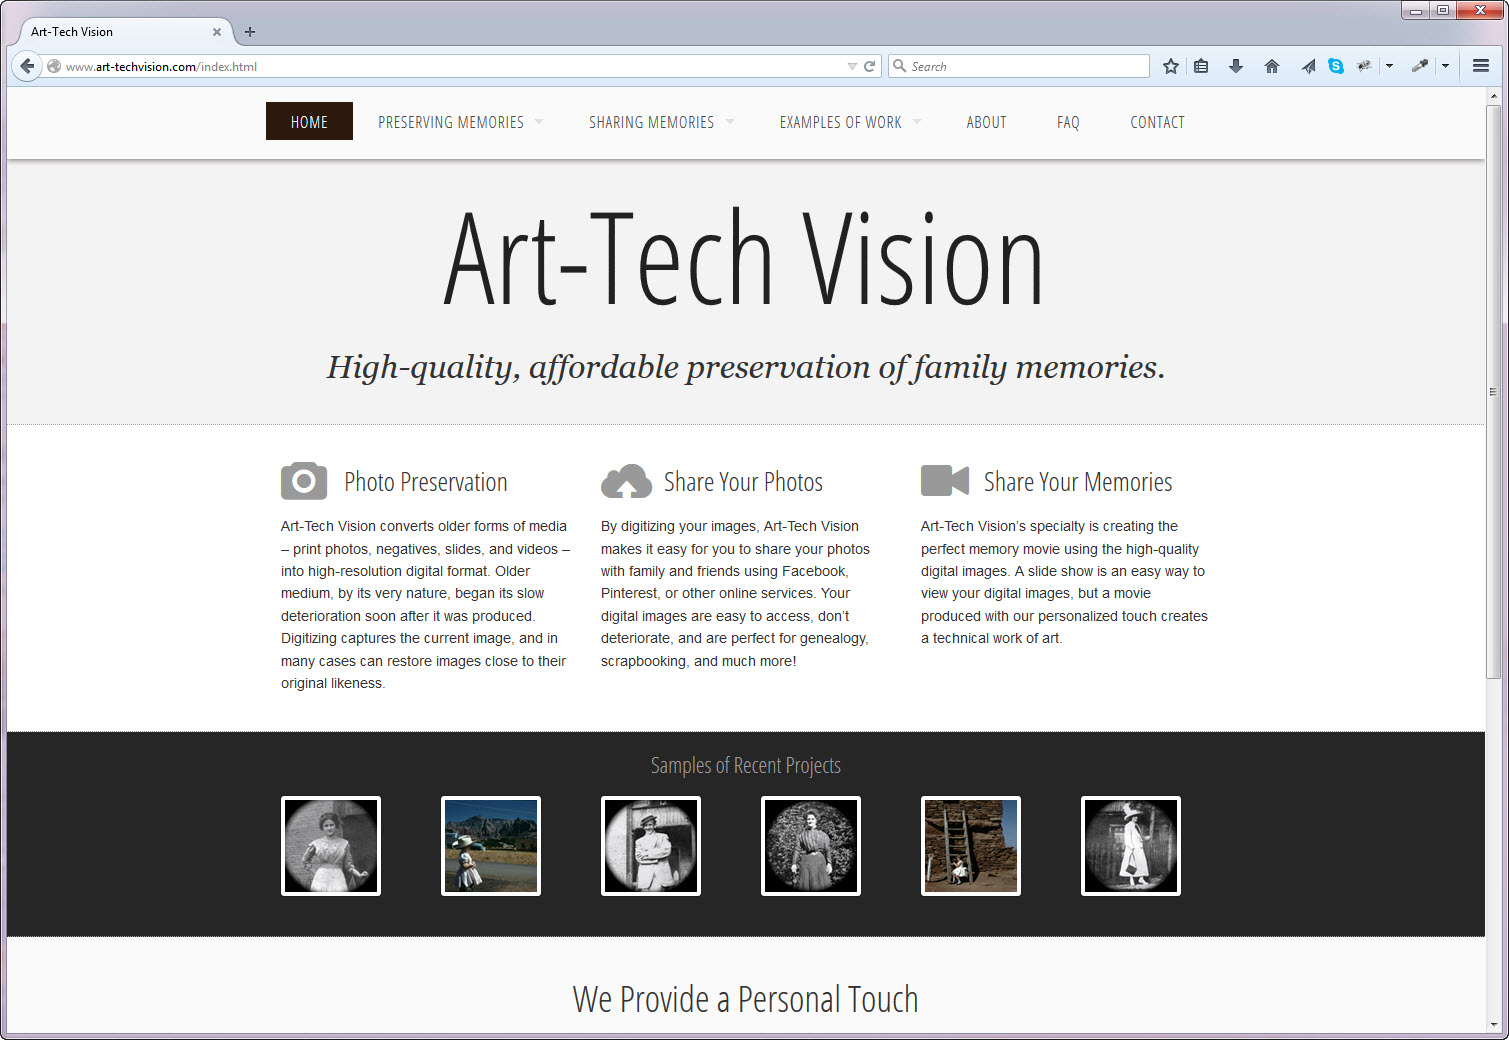 Site Project: Art-Tech Vision